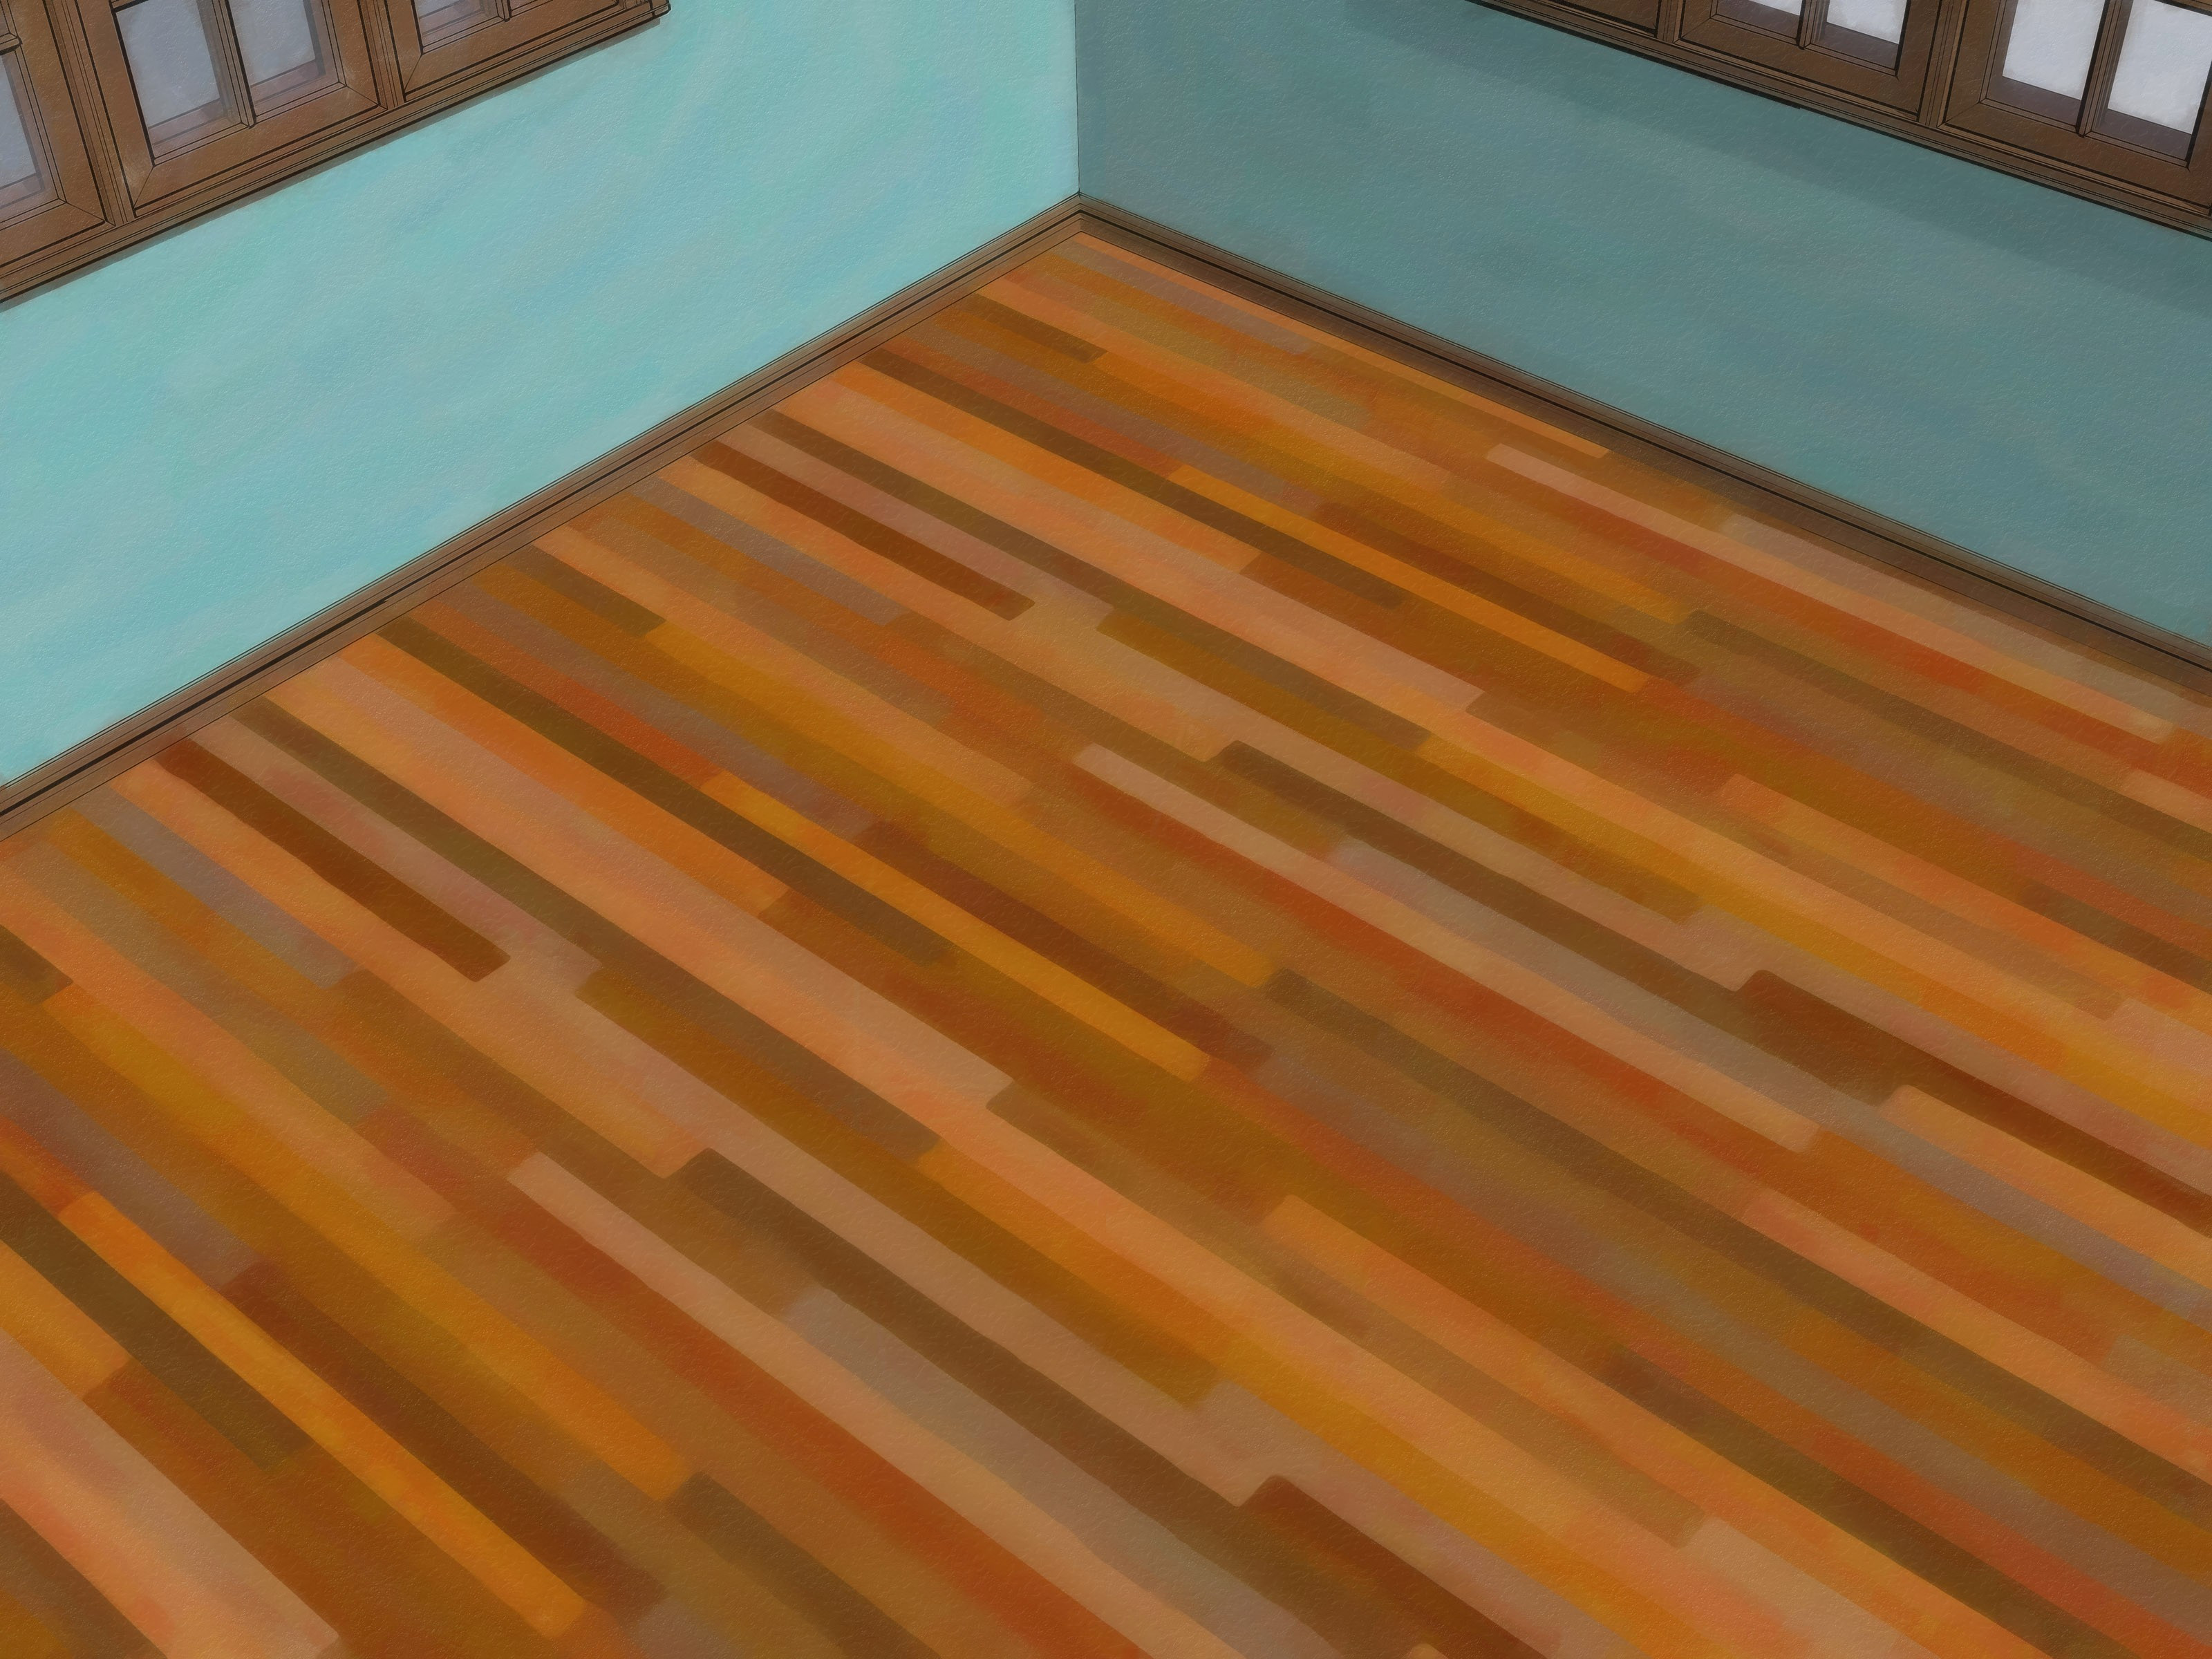 cleaning waxed hardwood floors of 14 fresh what is the best way to clean hardwood floors image inside what is the best way to clean hardwood floors inspirational 50 inspirational sanding and refinishing hardwood